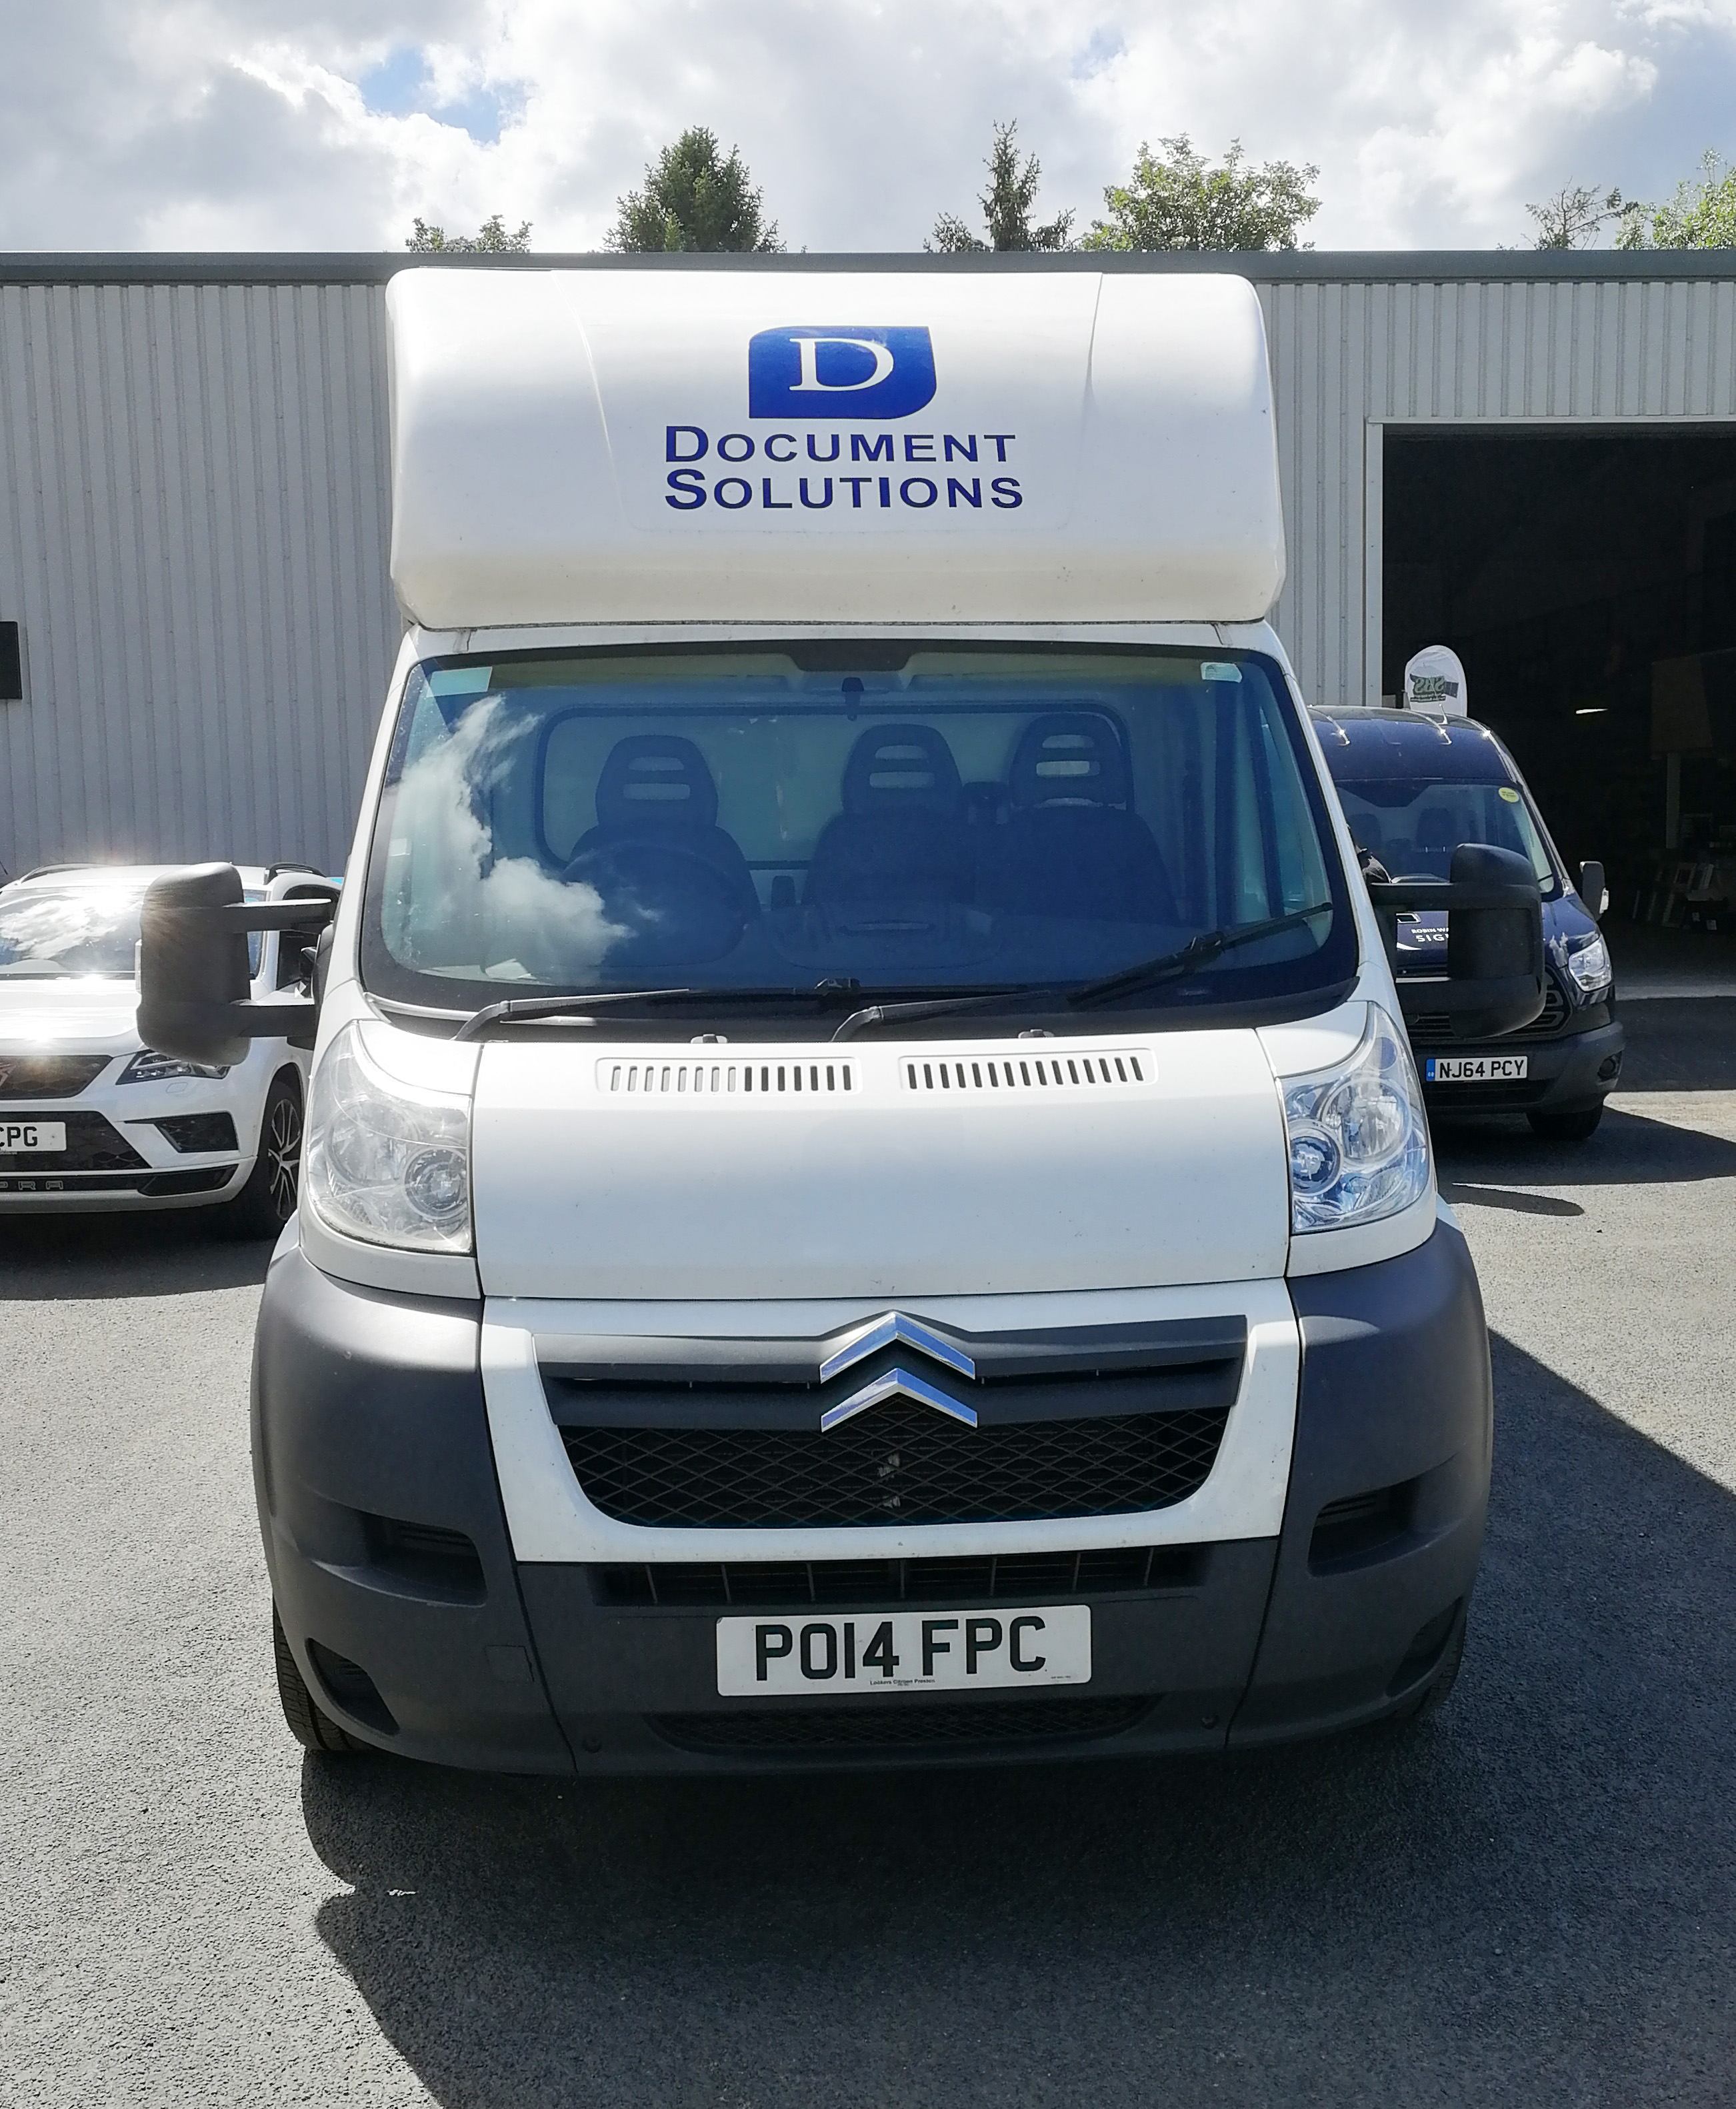 Doc-Solutions-Luton-4